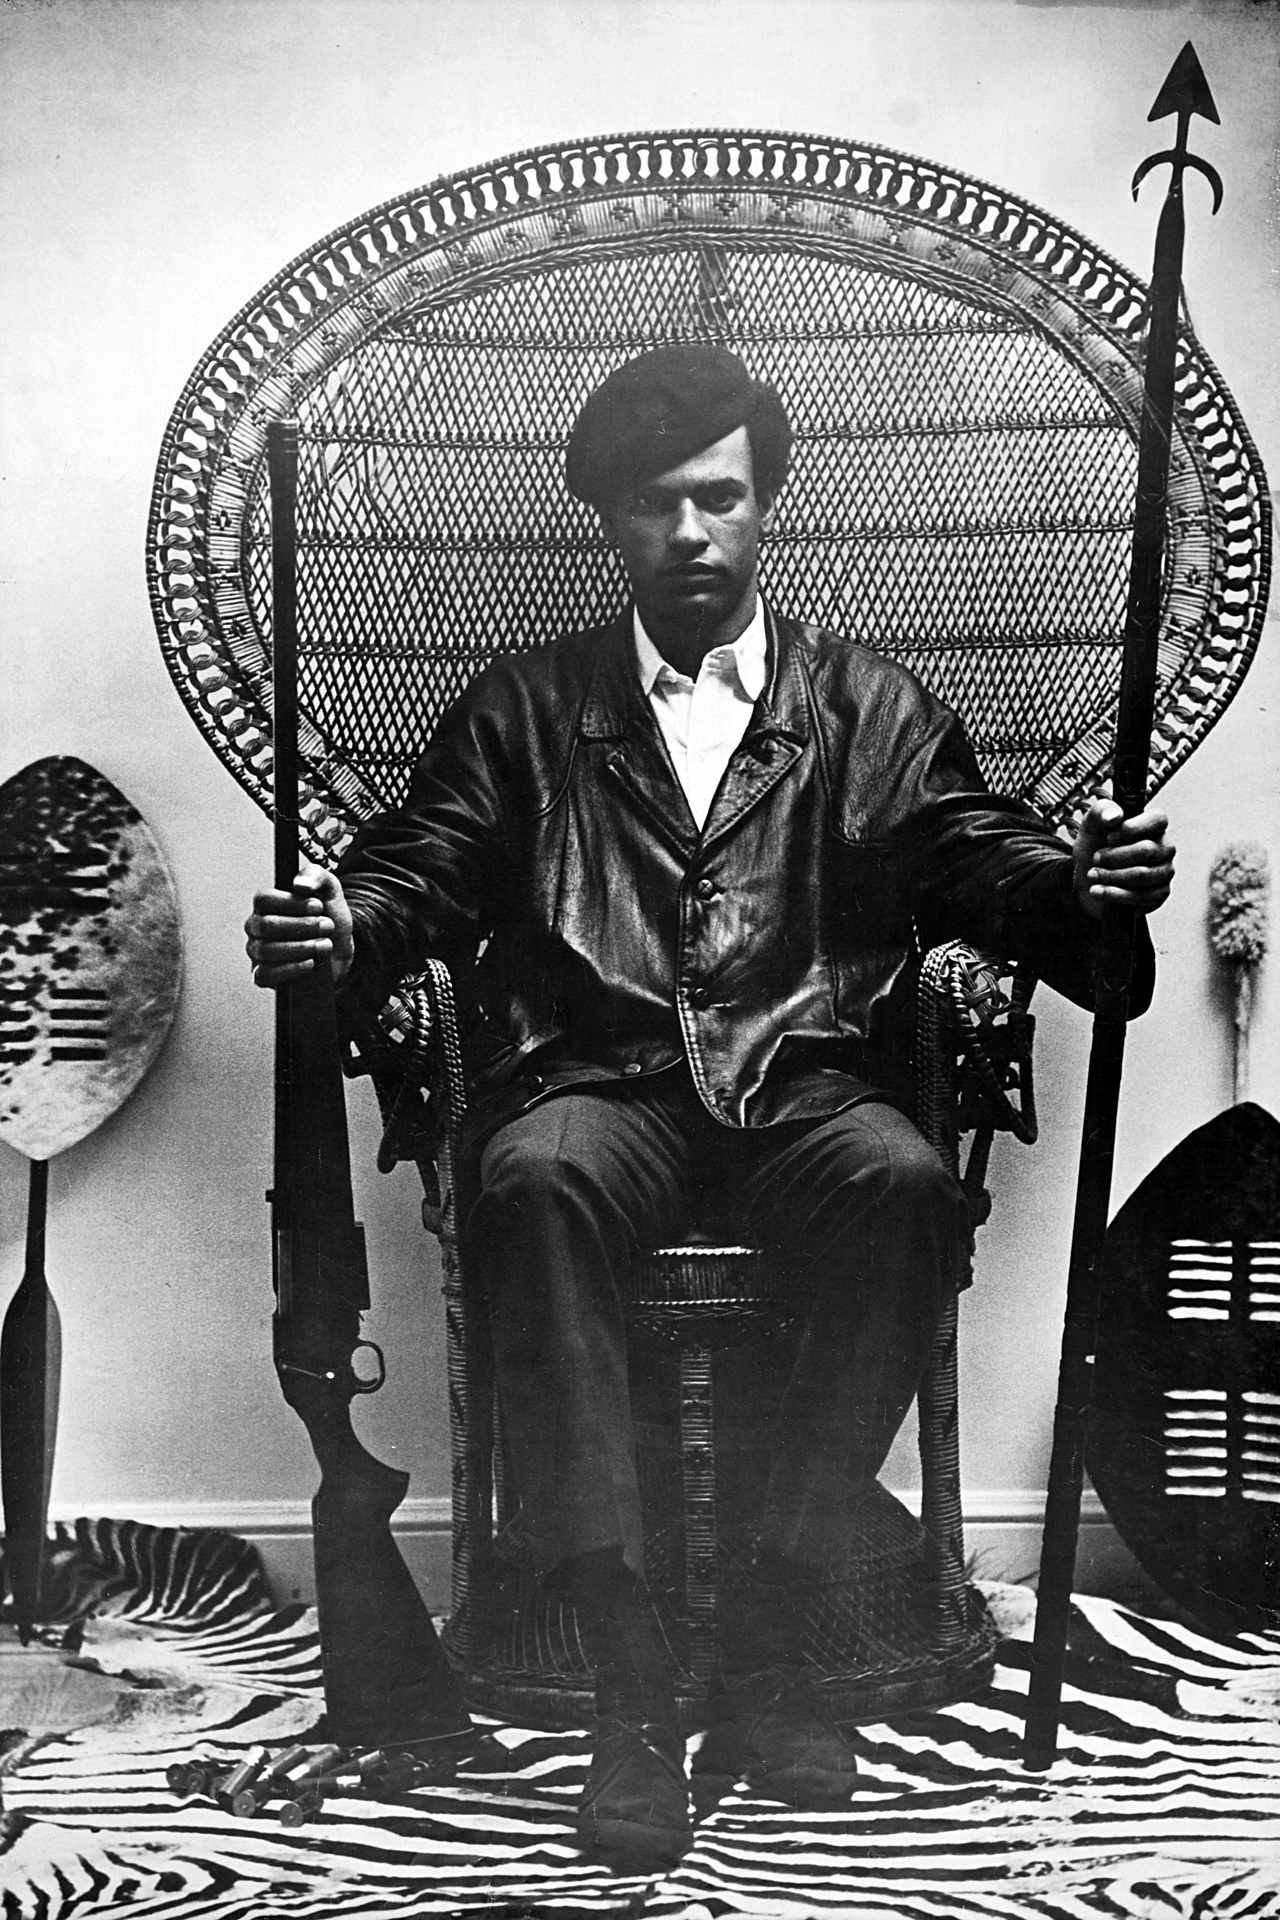 huey p newton Dr huey percy newton (february 17, 1942 - august 22, 1989) was an african-american political activist and revolutionary who, along with bobby seale, co-founded the black panther party in 1966.